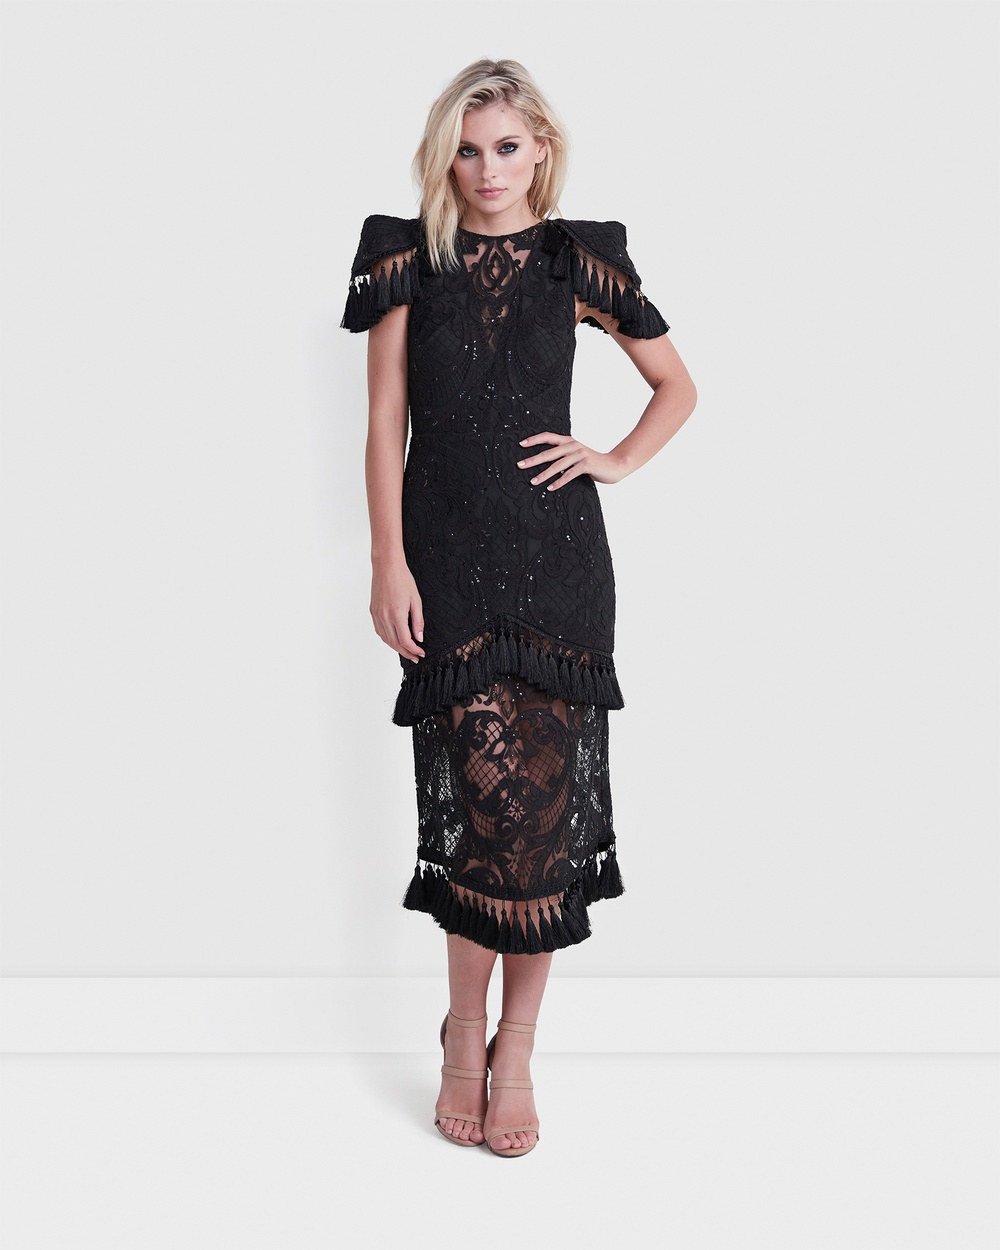 TORANNCE Black High Hopes Dress